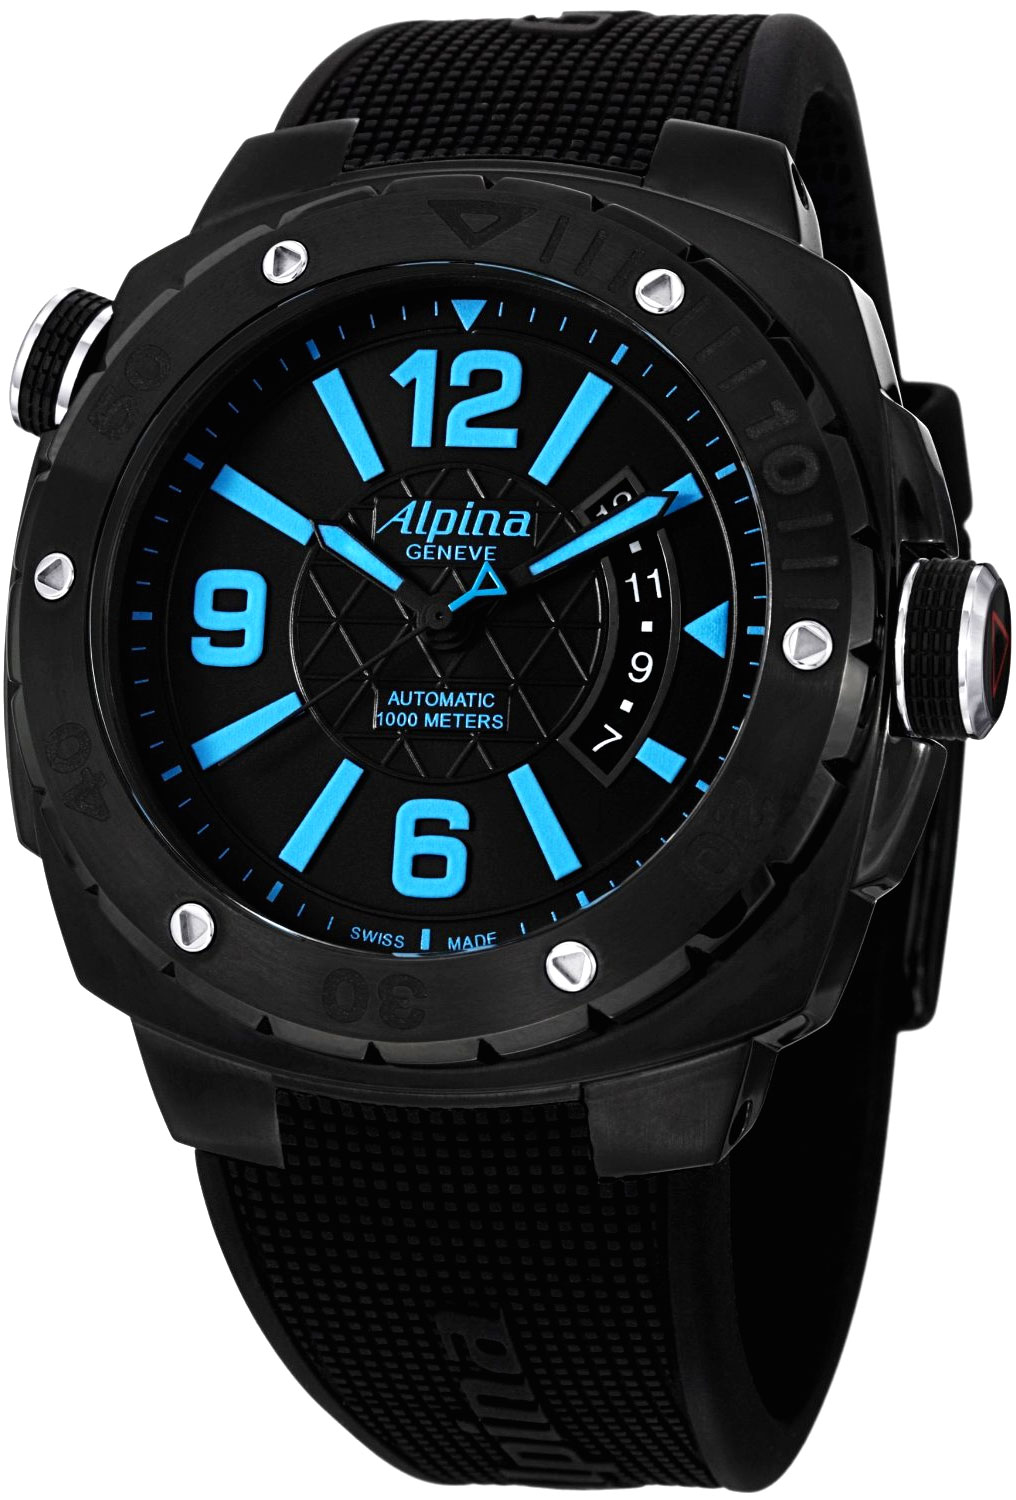 Alpina adventure extreme diver men 39 s watch model al 525lbcd5fbaev6 for Adventure watches